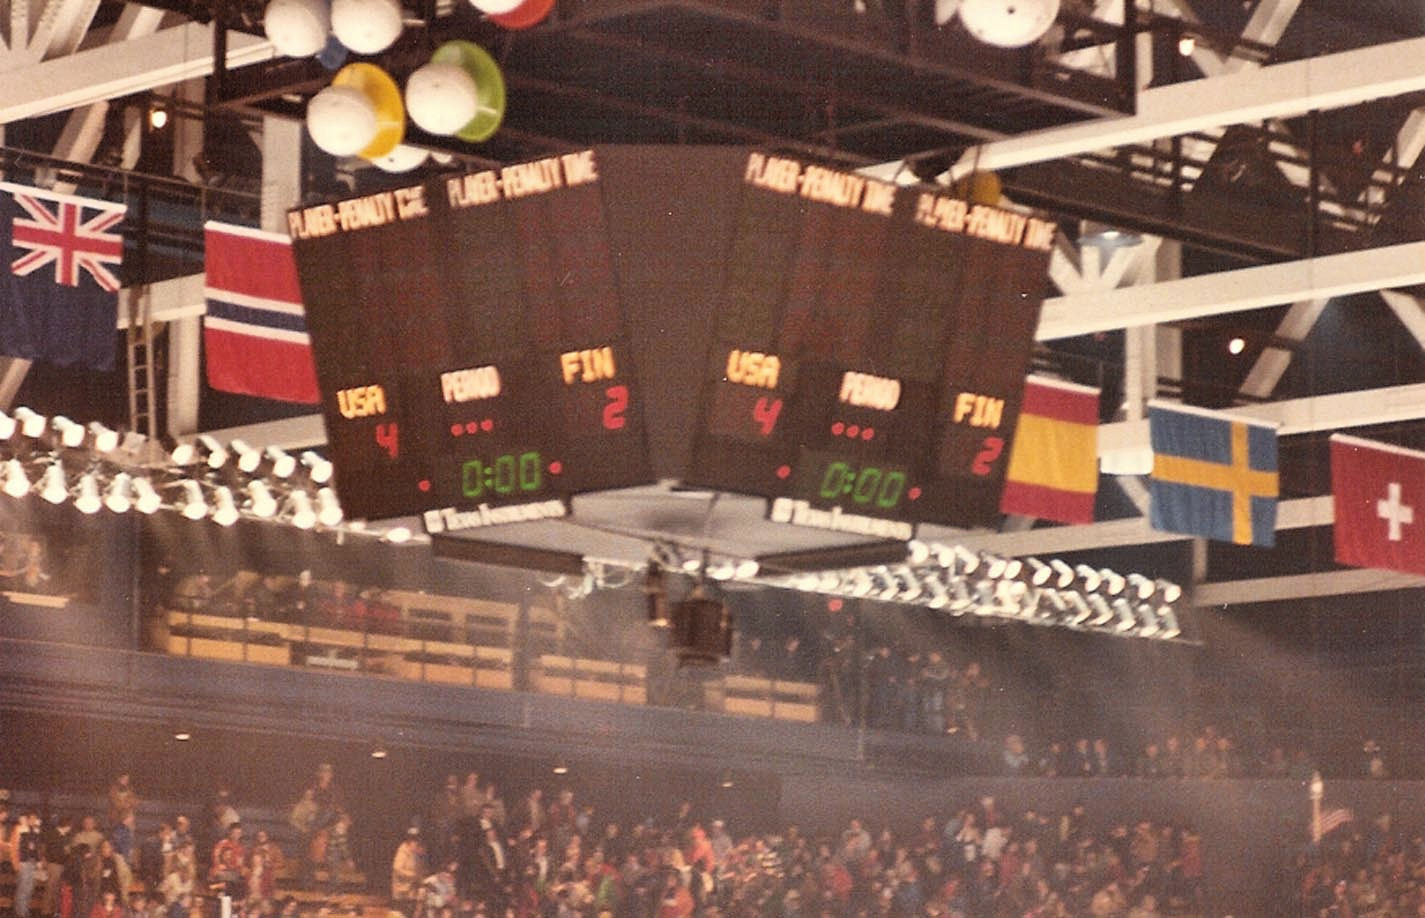 """The scoreboard that recorded the United States' famous victory over the Soviet Union in the """"Miracle on Ice"""" at the 1980 Winter Olympics in Lake Placid is to be housed in the new US Olympic Museum in Colorado Springs ©Twitter"""